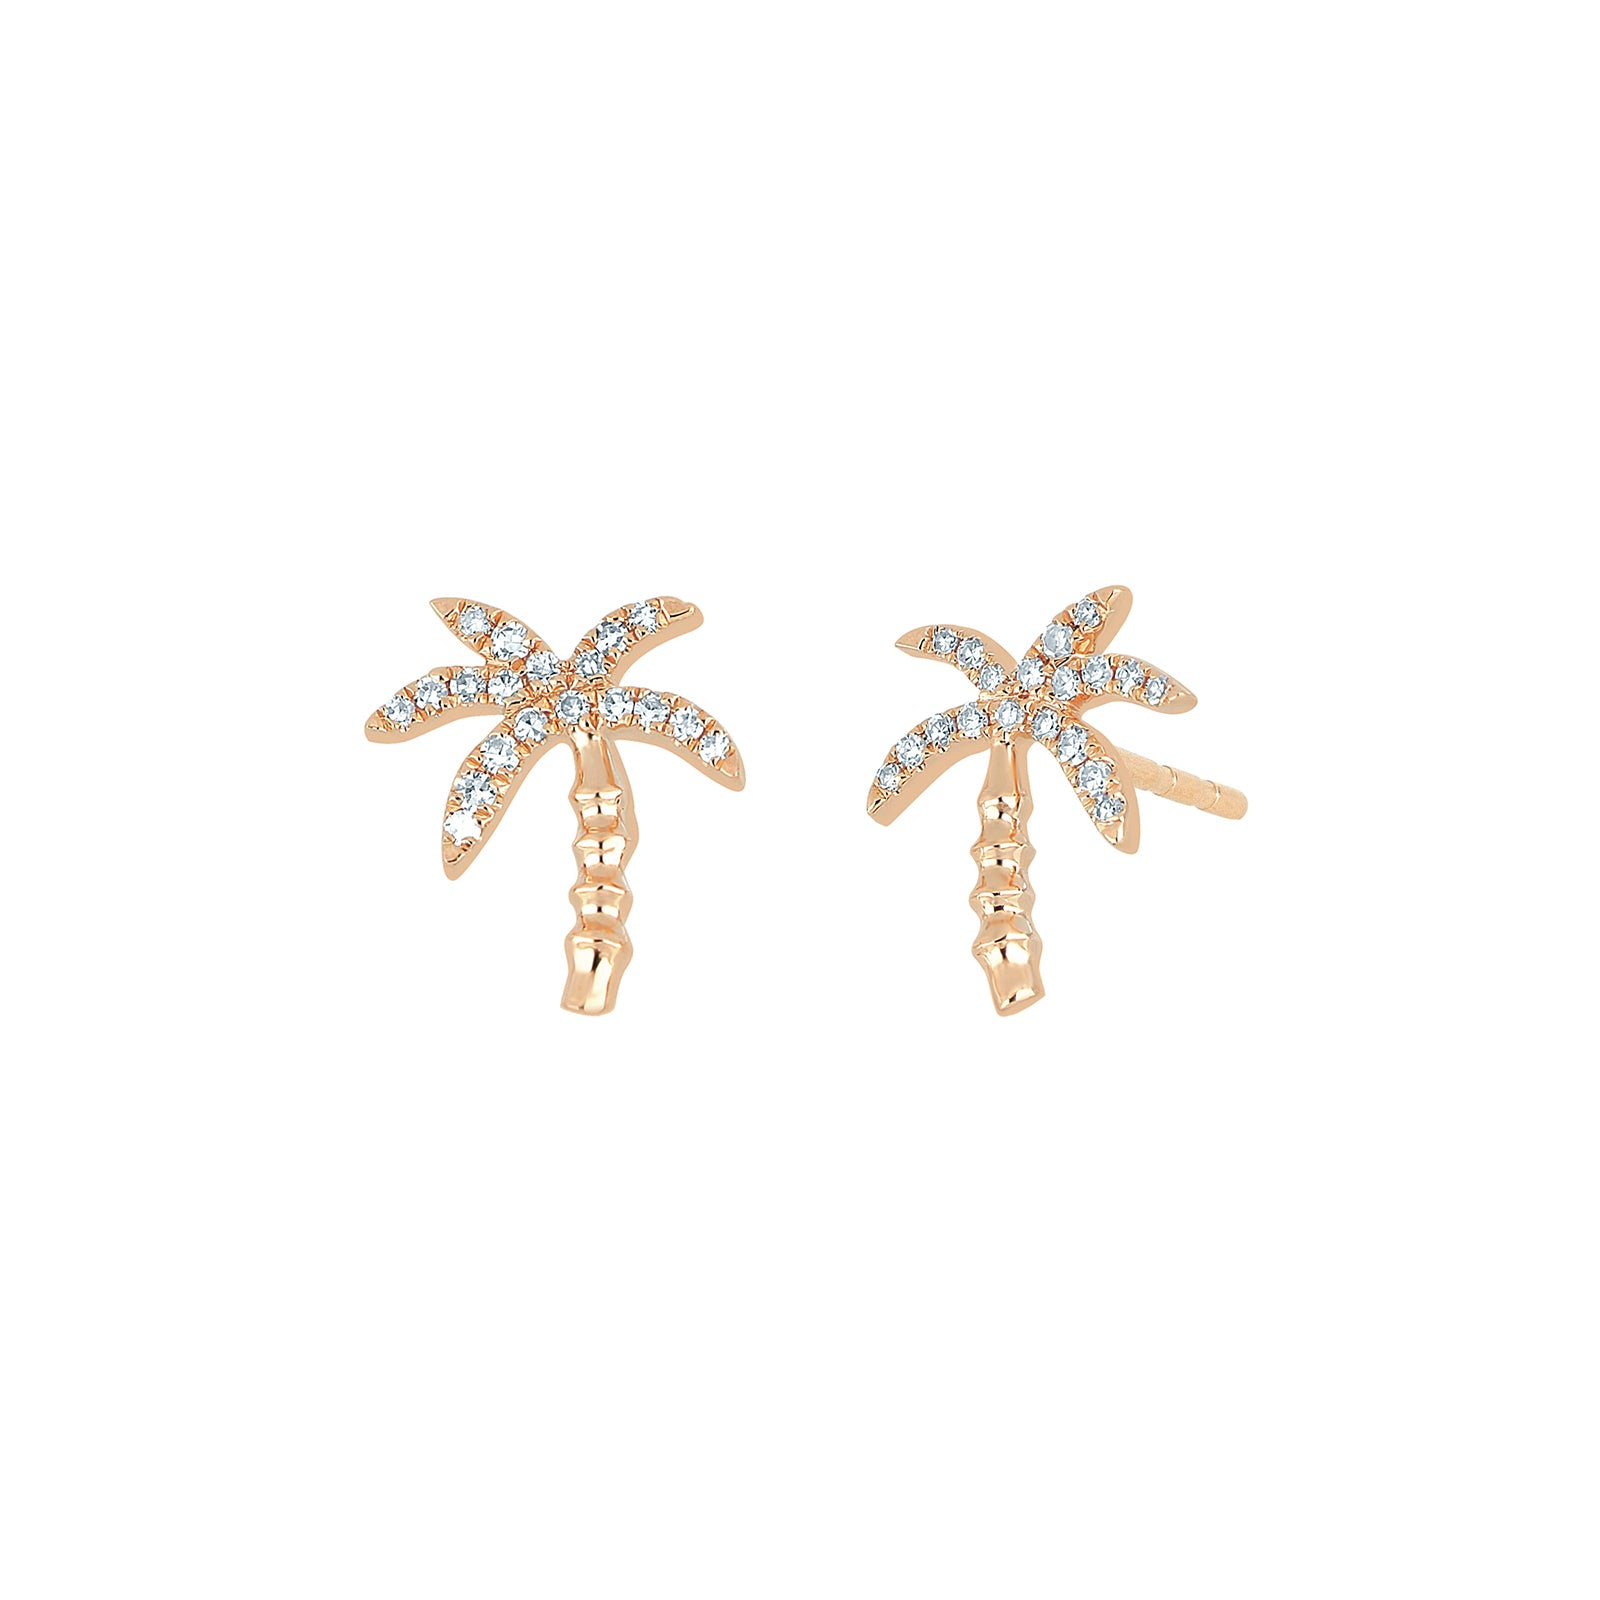 EF Collection Wild Palm Diamond Studs - Rose Gold - Earrings - Broken English Jewelry